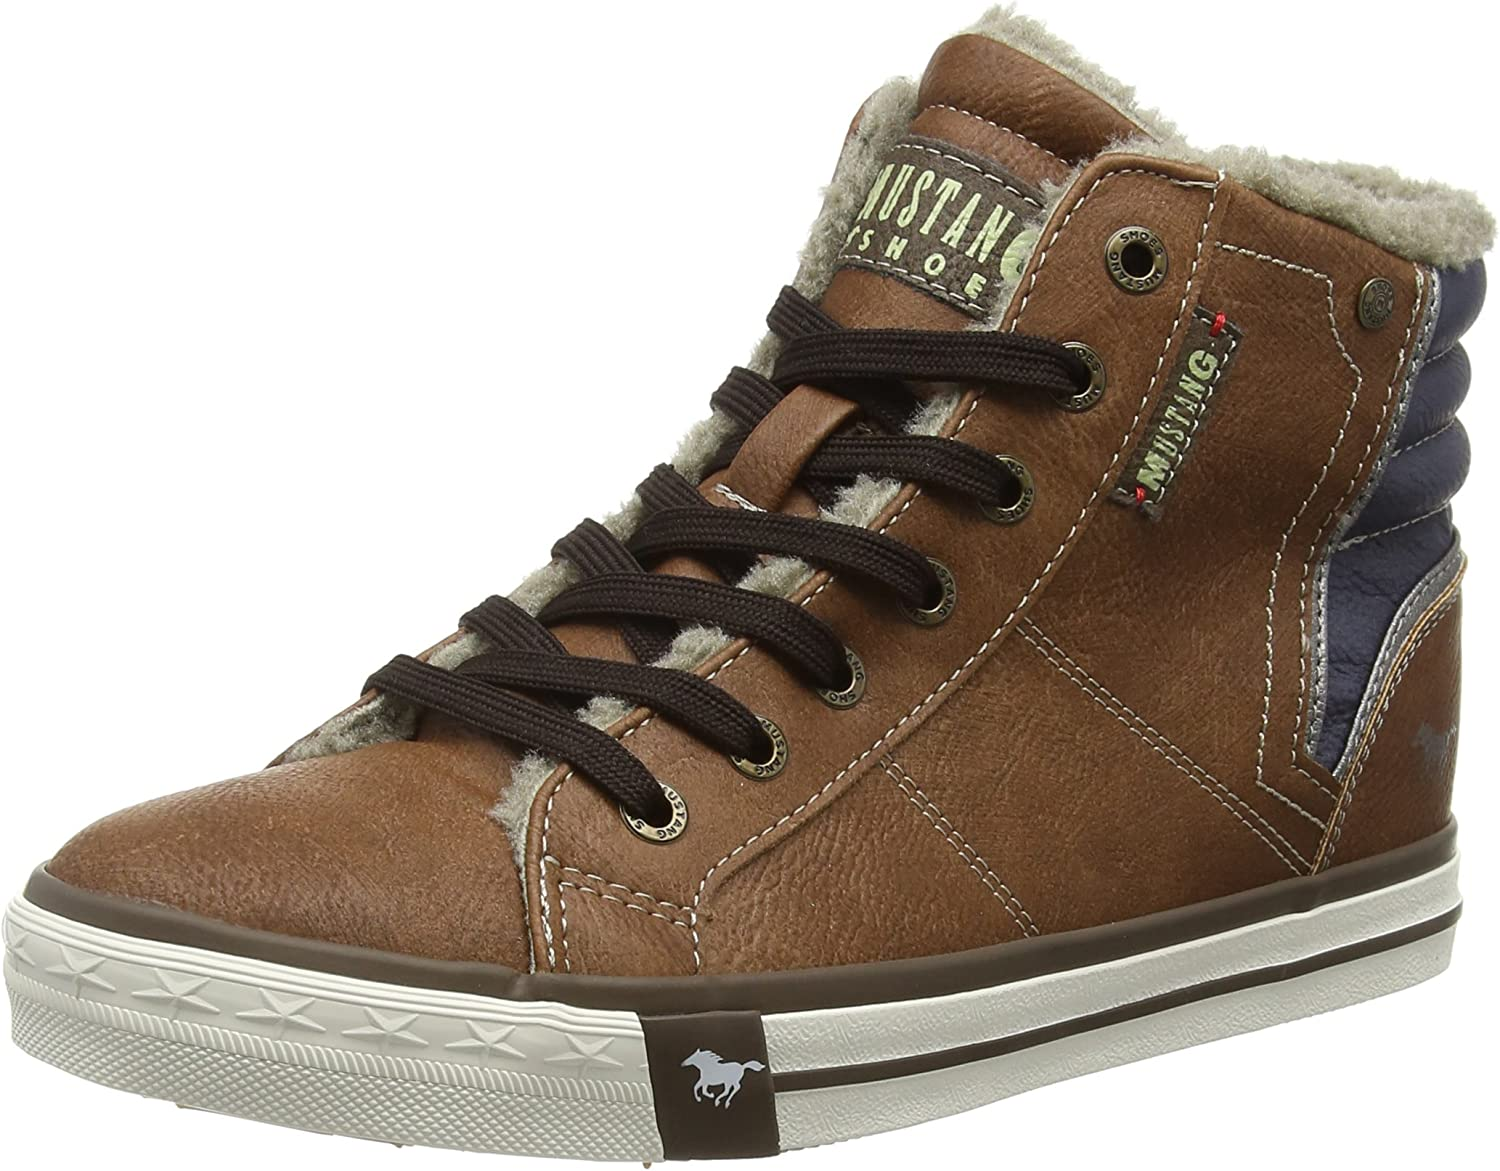 Mustang Women's 1146-601-301 Hi-Top Trainers